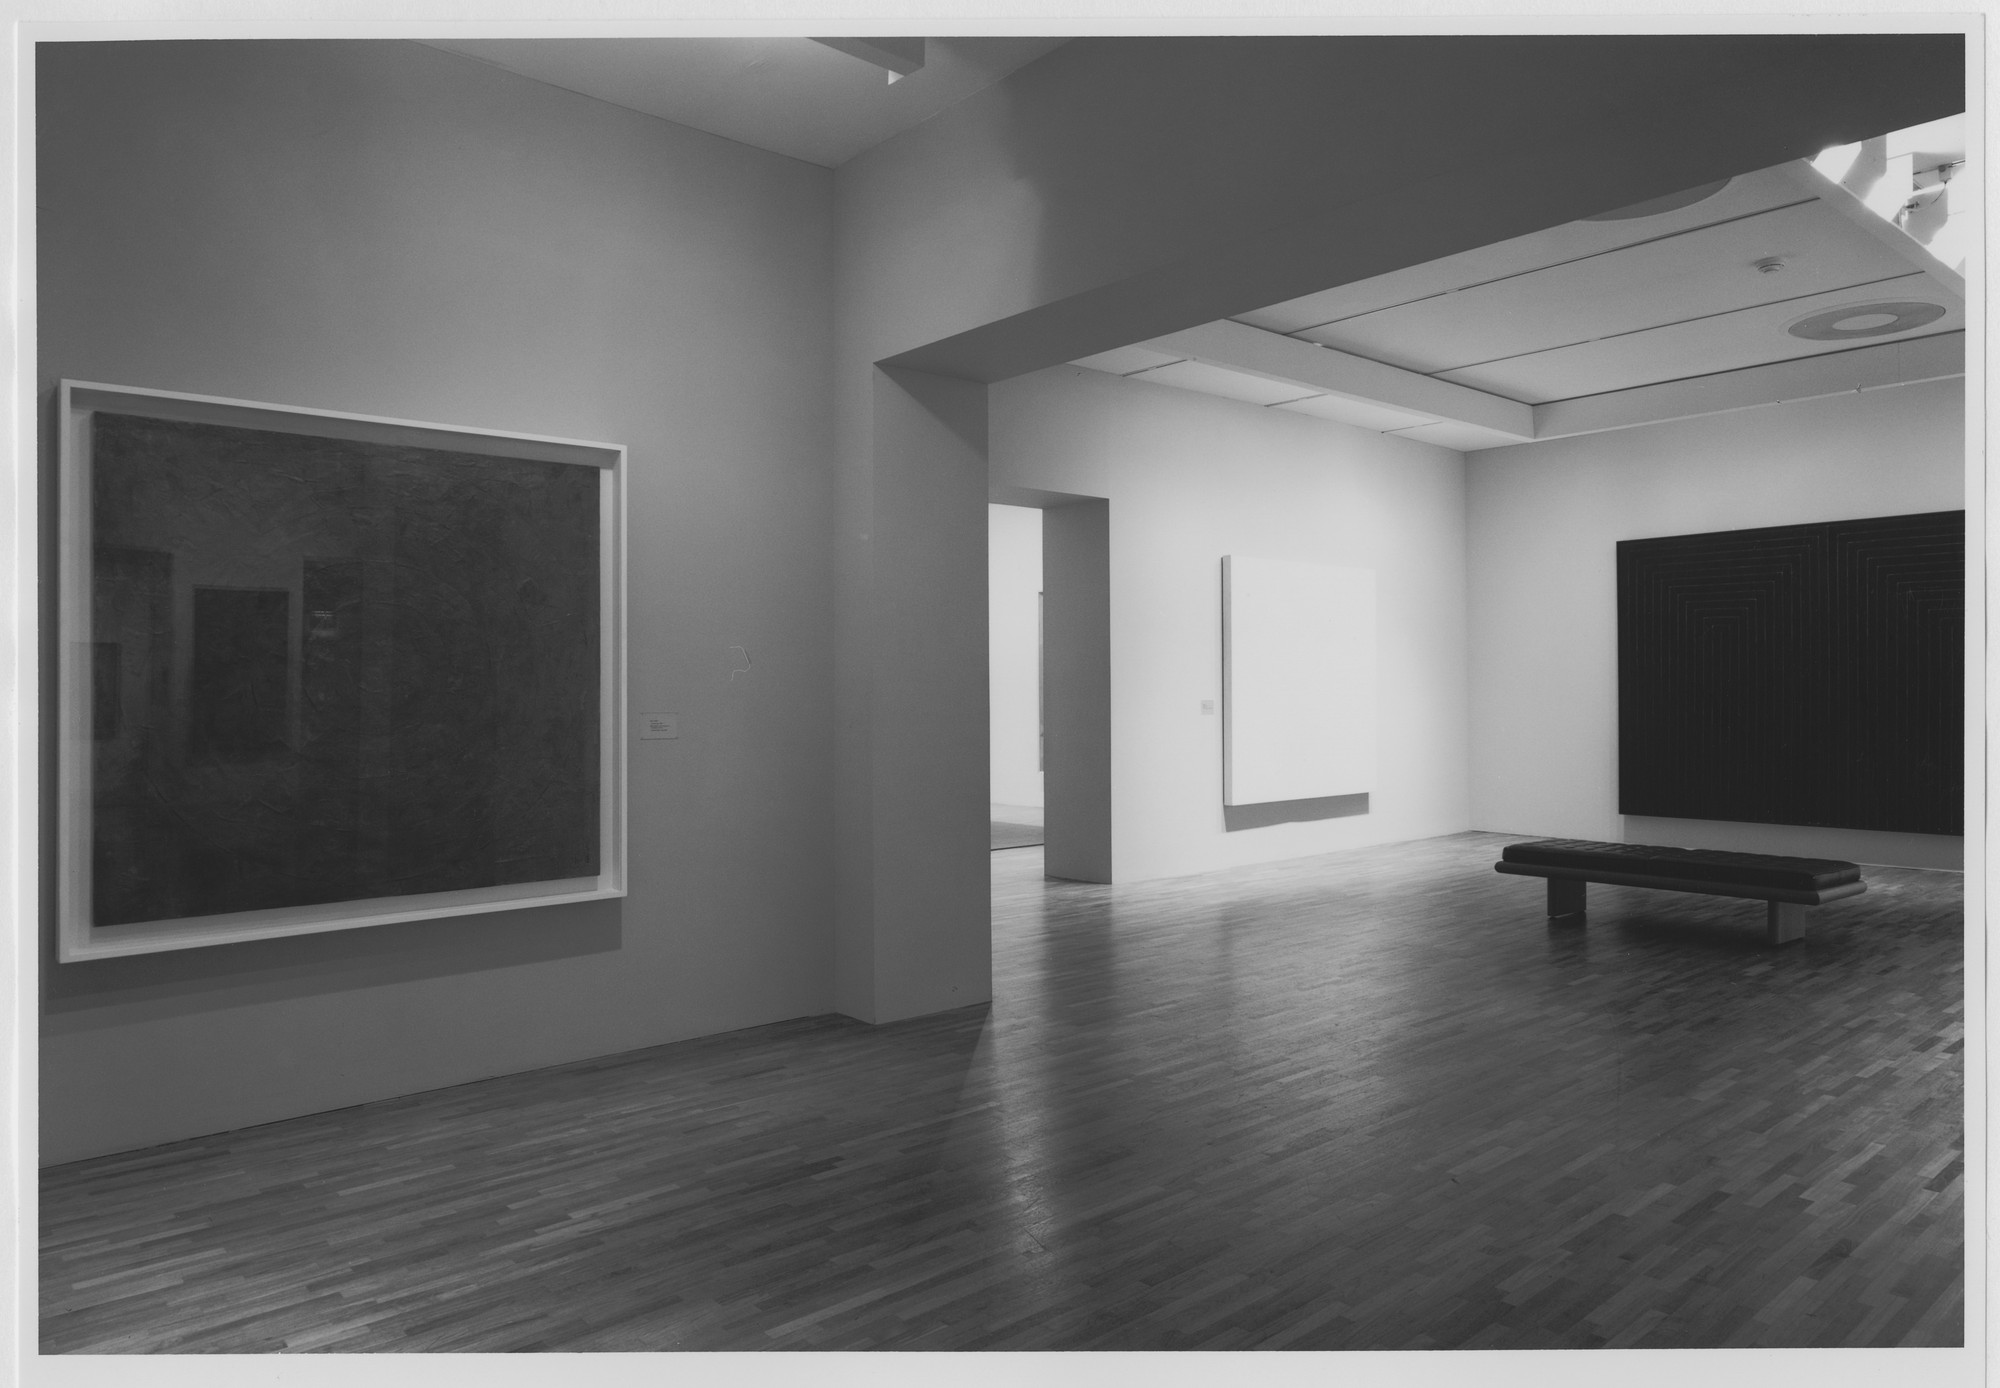 "Installation view of the exhibition, ""Contemporary Works in the Collection"" April 11, 1986–October 9, 1986. Photographic Archive. The Museum of Modern Art Archives, New York. IN1419a.1. Photograph by Mali Olatunji."